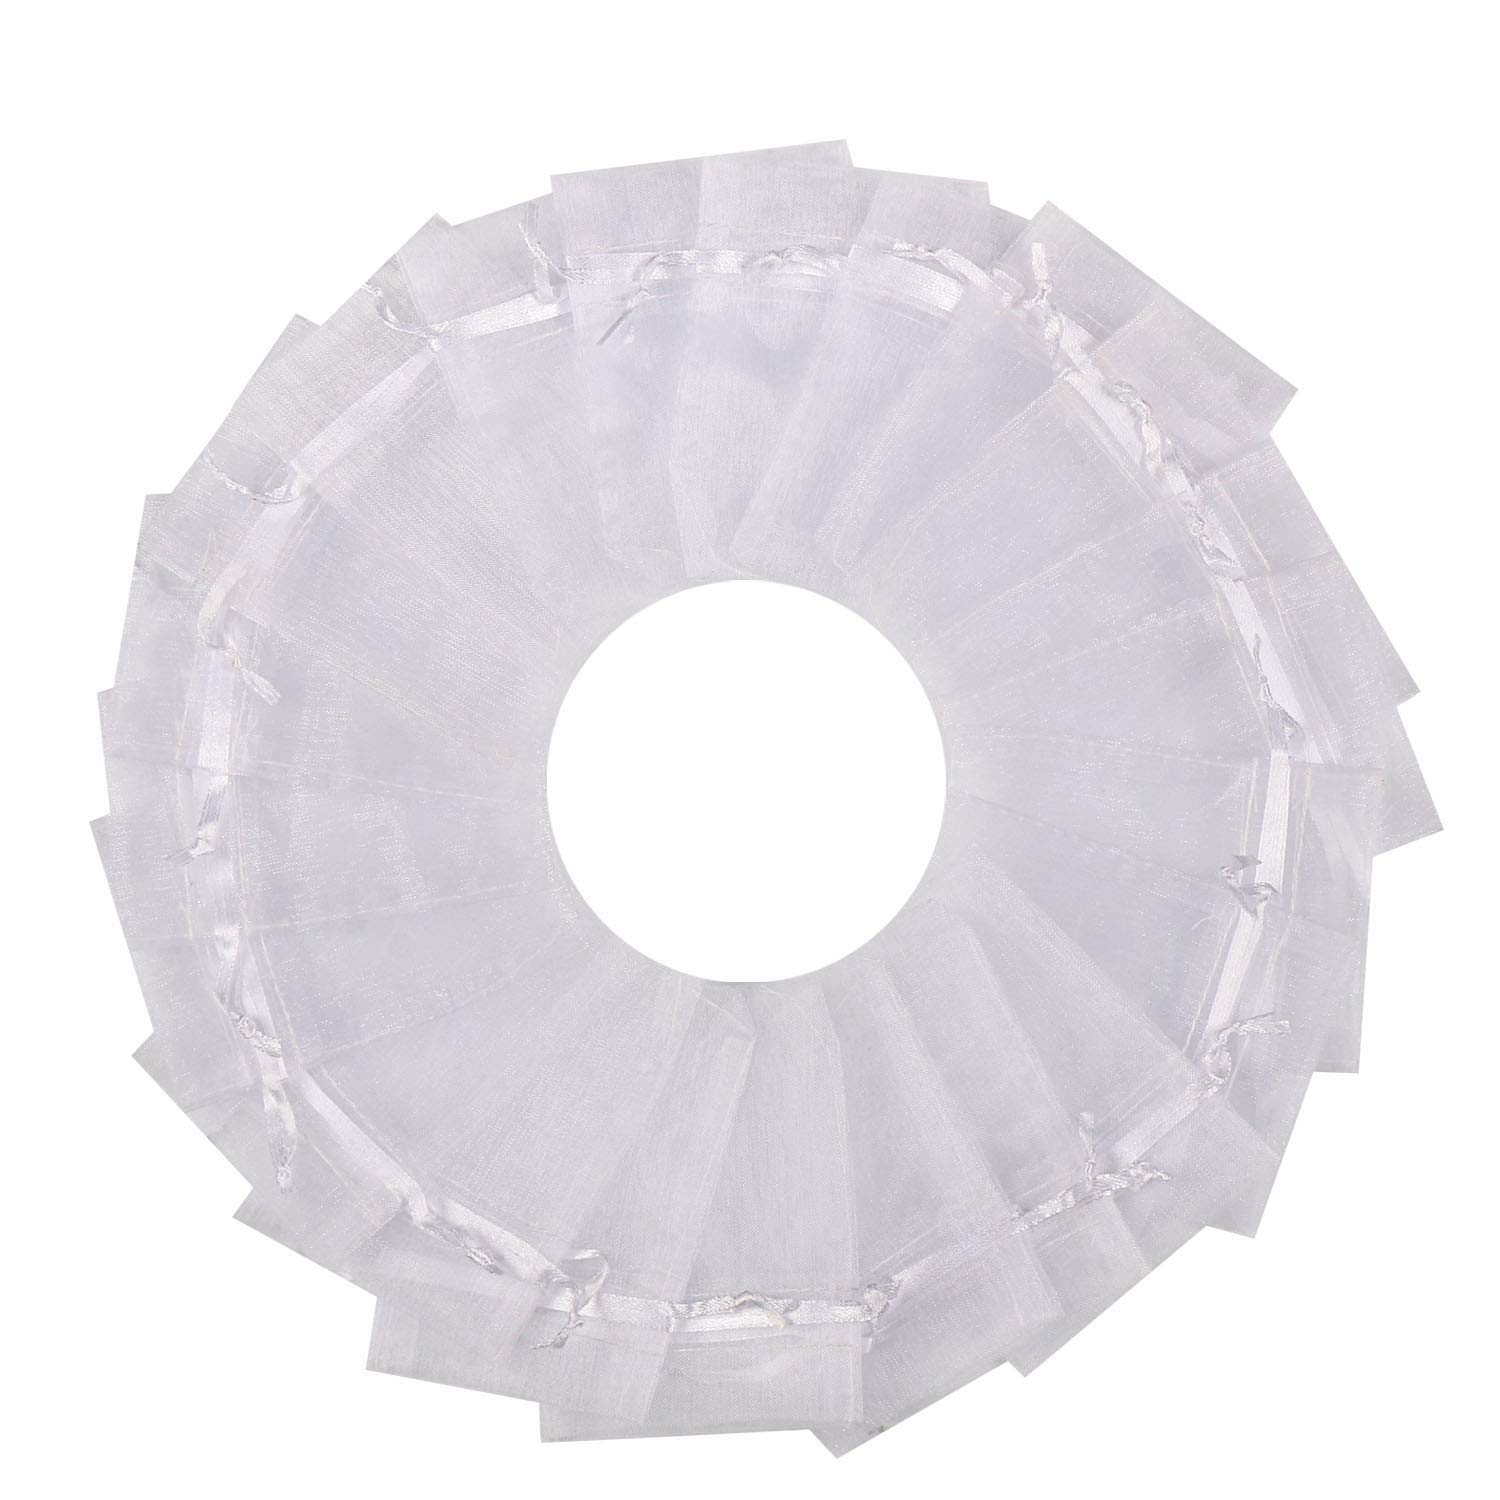 SumDirect 100PCS 3x4 Inches Organza Gift Bags with Drawstring-White